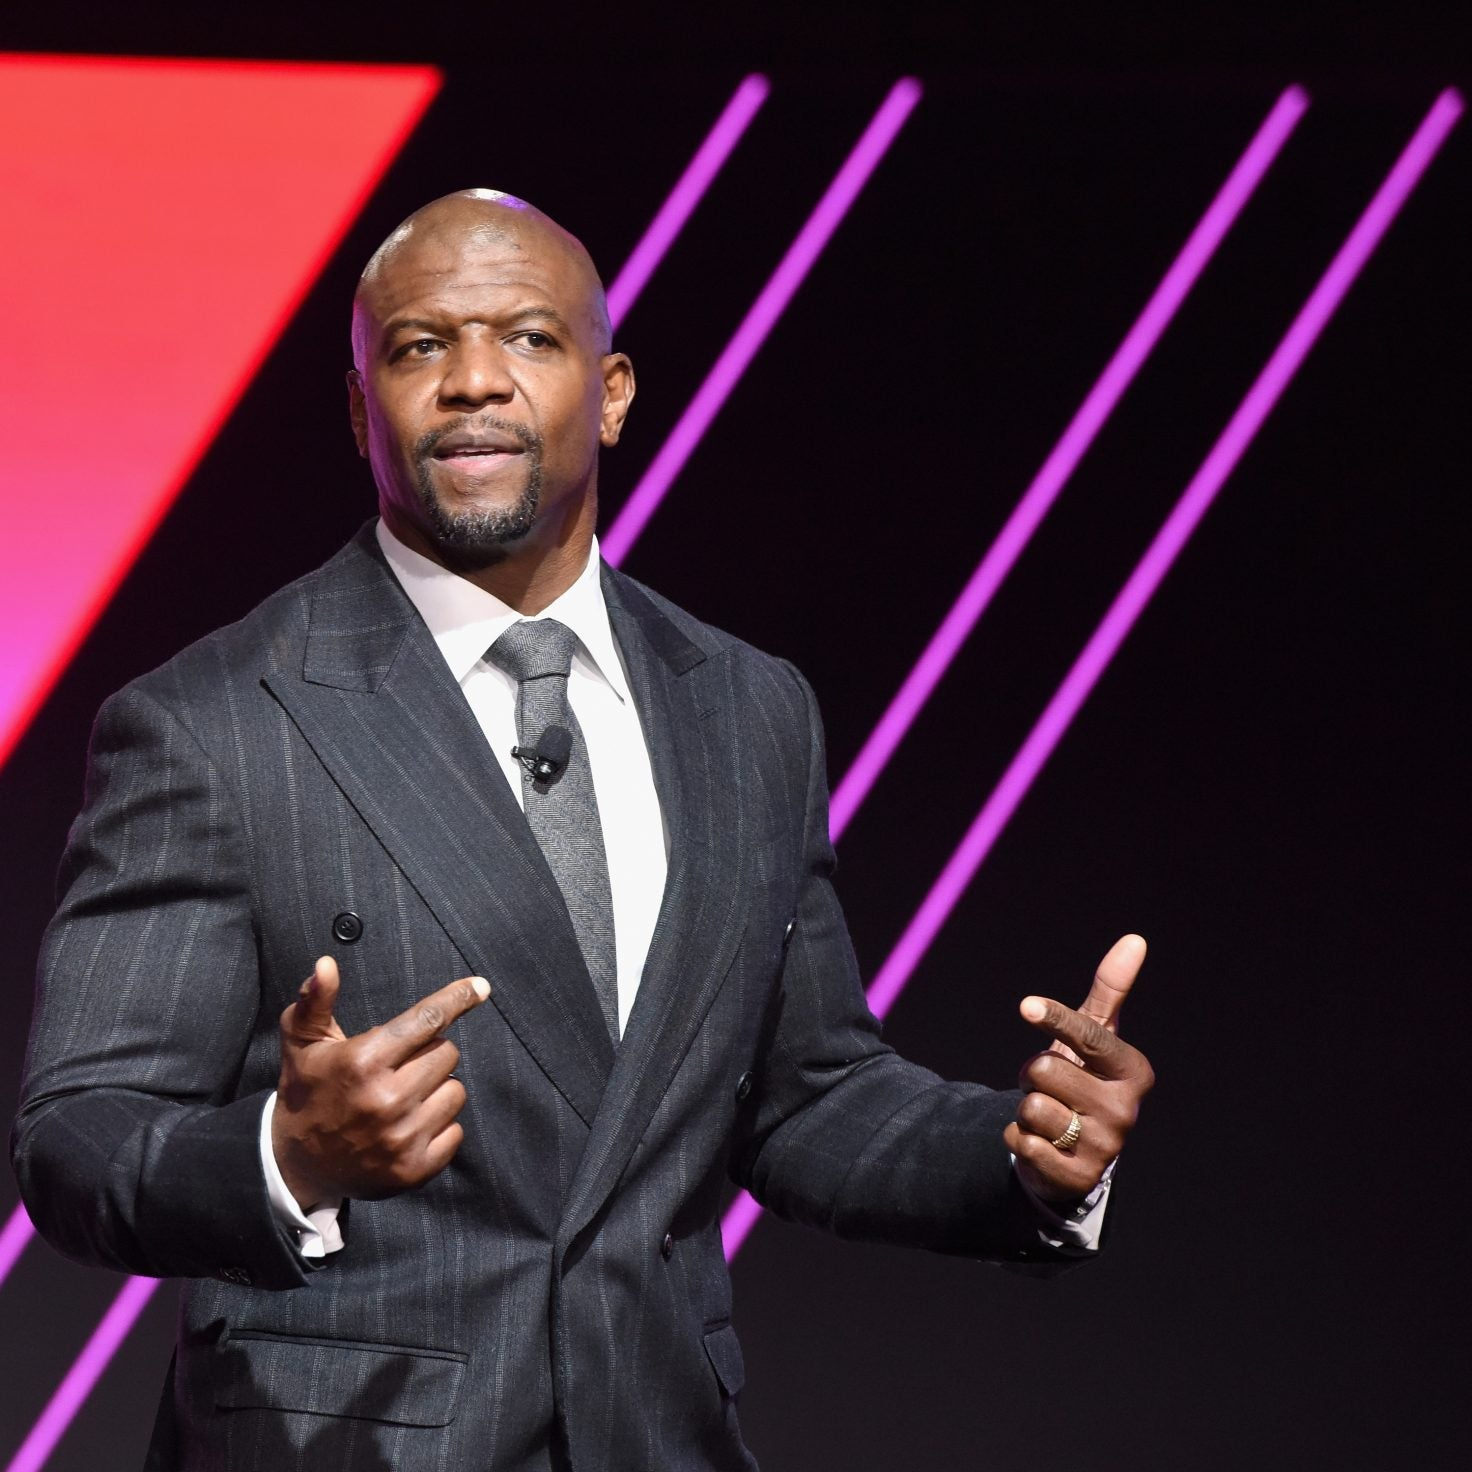 Terry Crews Breaks His Silence On Gabrielle Union's Clapback